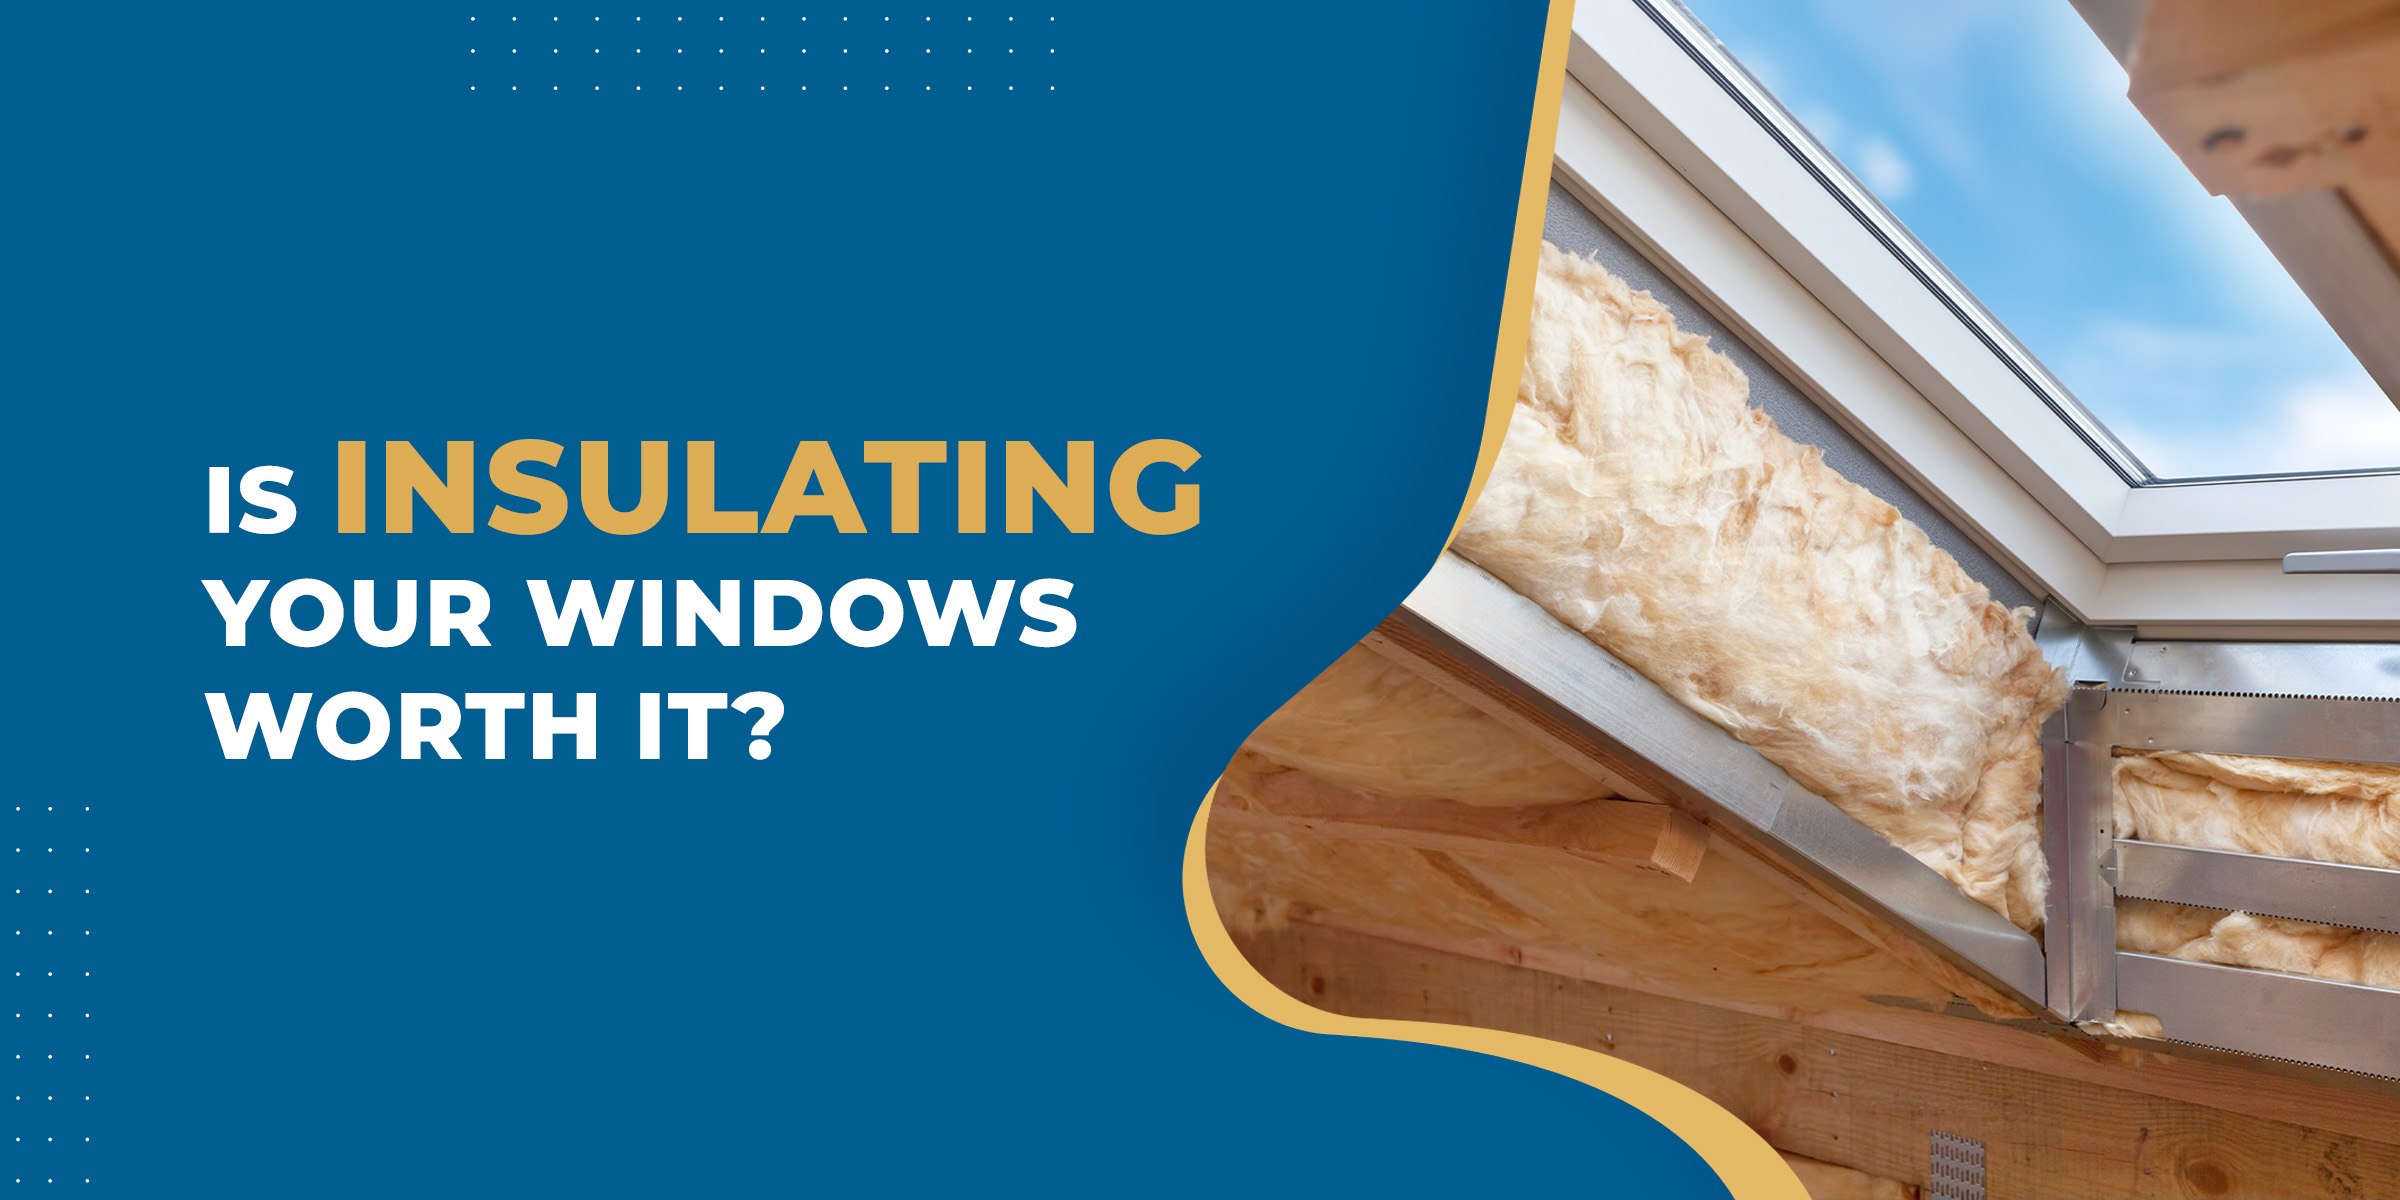 Is Insulating Your Windows Worth It